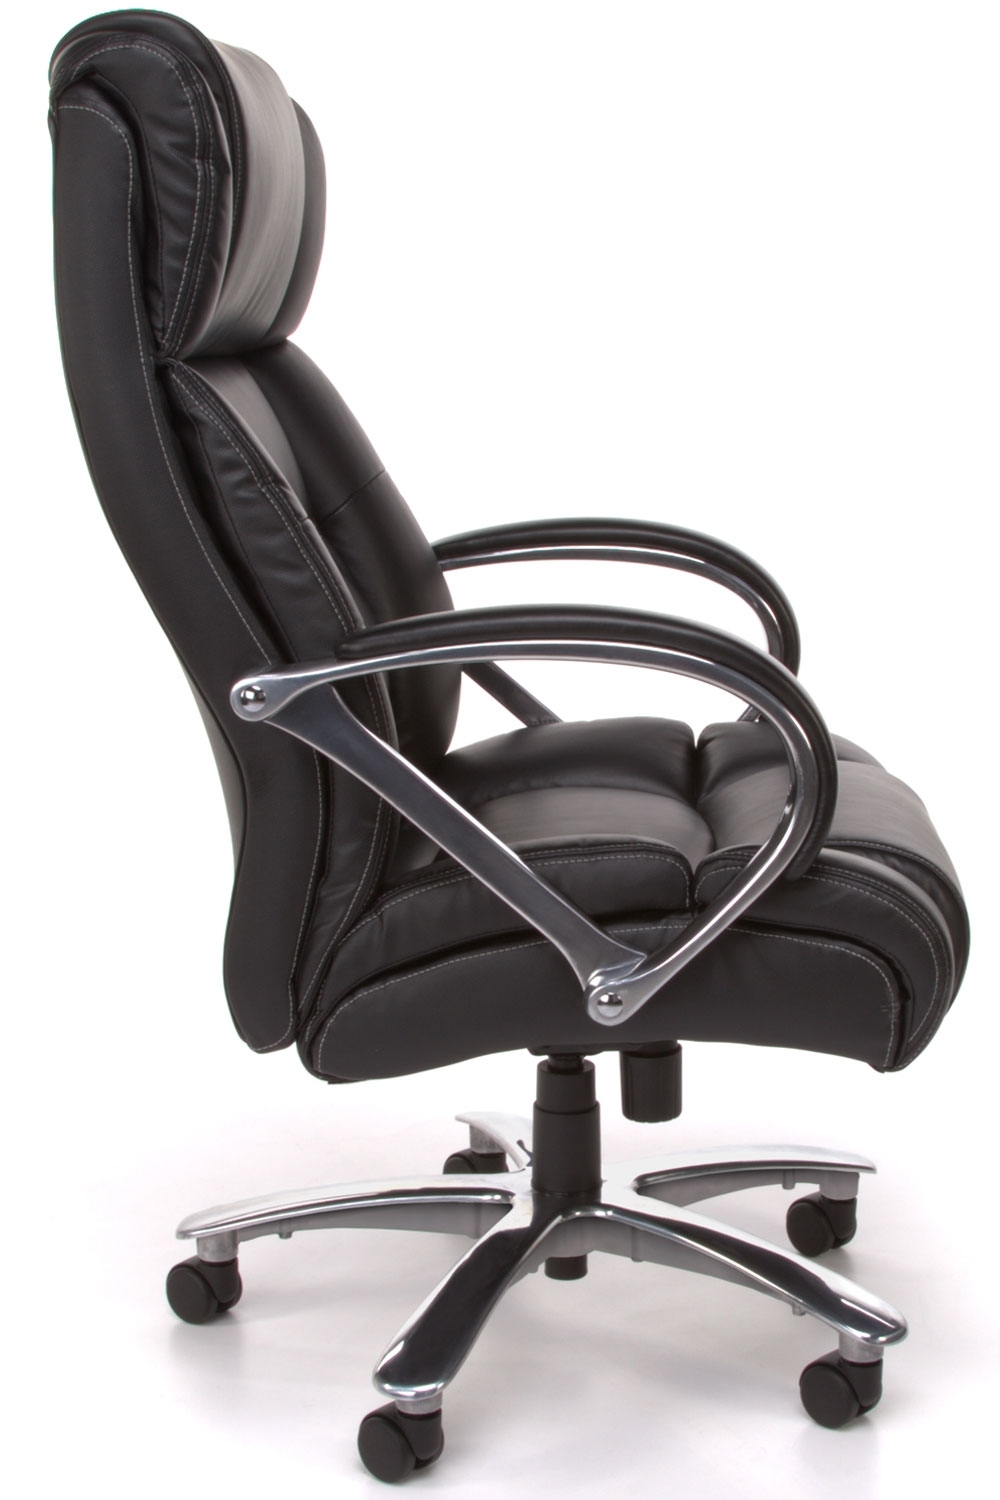 810 Lx Avenger Series Big And Tall Executive Office Chair In Throughout Well Known Large Executive Office Chairs (View 2 of 20)